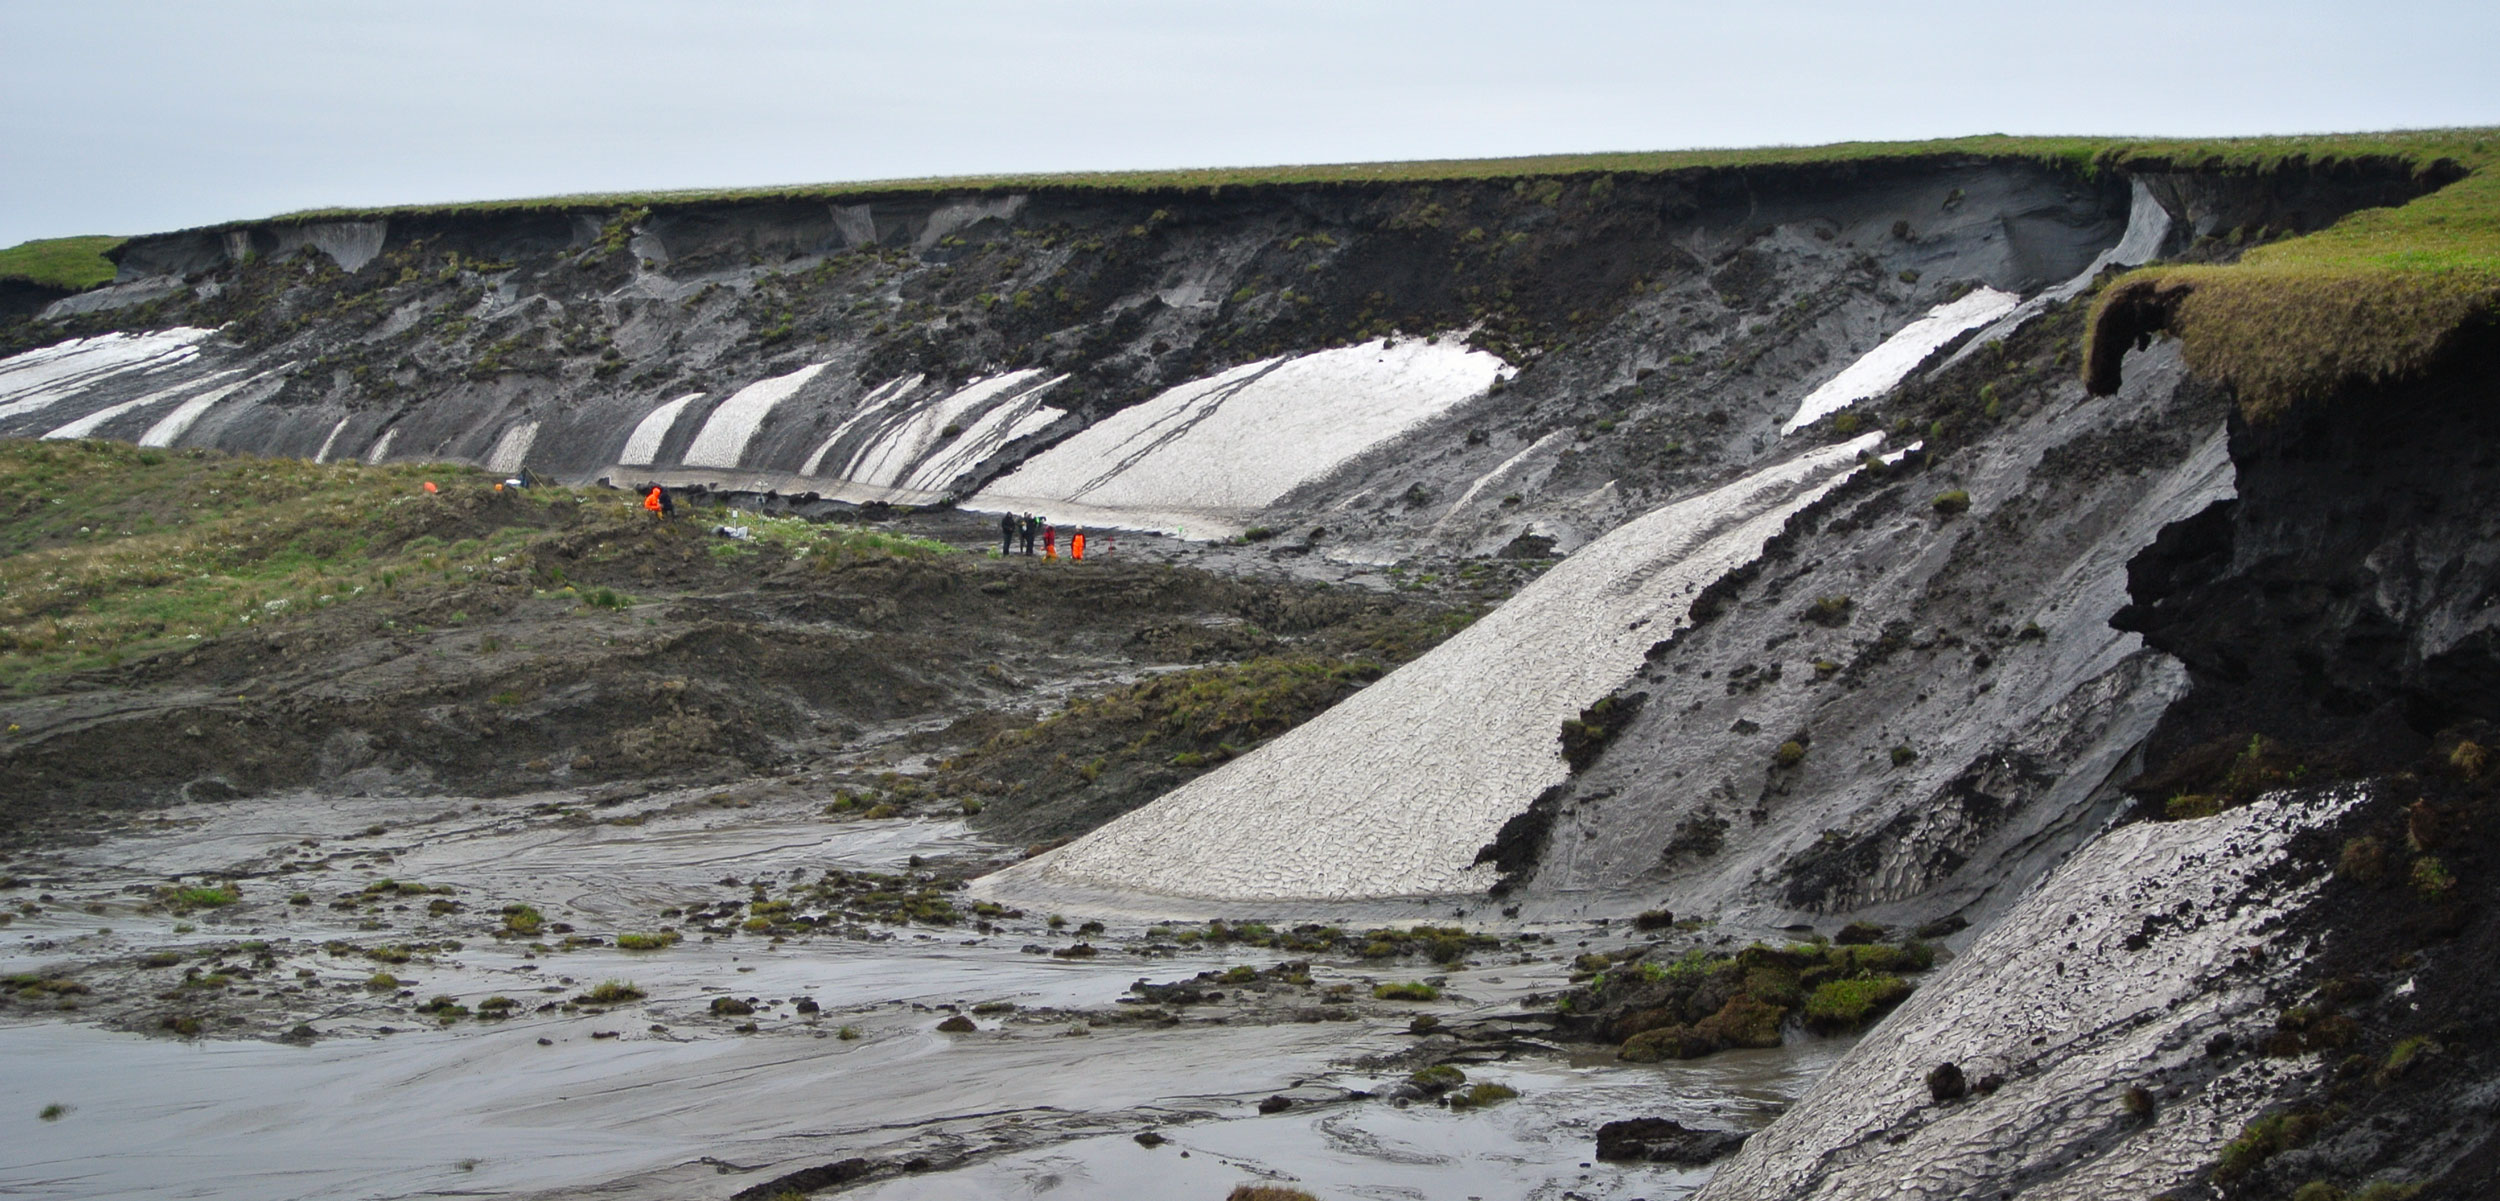 permafrost thaw slump on the Beaufort Sea